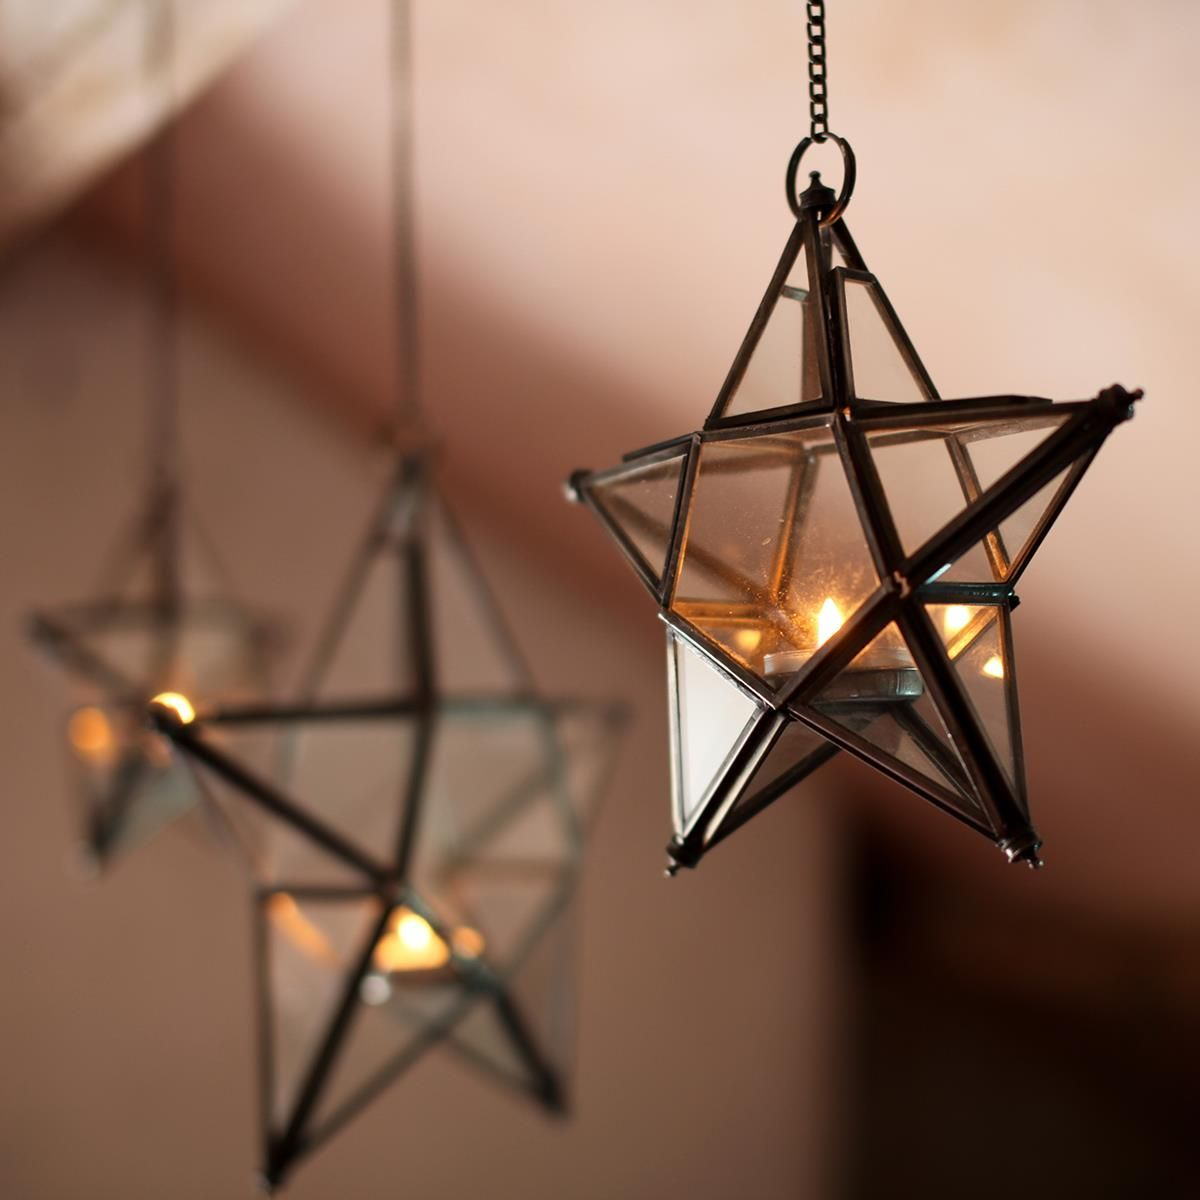 Antique zinc glass star holidays pinterest star glass and twinkle twinkle star chandelier cool decorating with stars with hanging star chandelier shaped design chandeliers inspiration arubaitofo Gallery